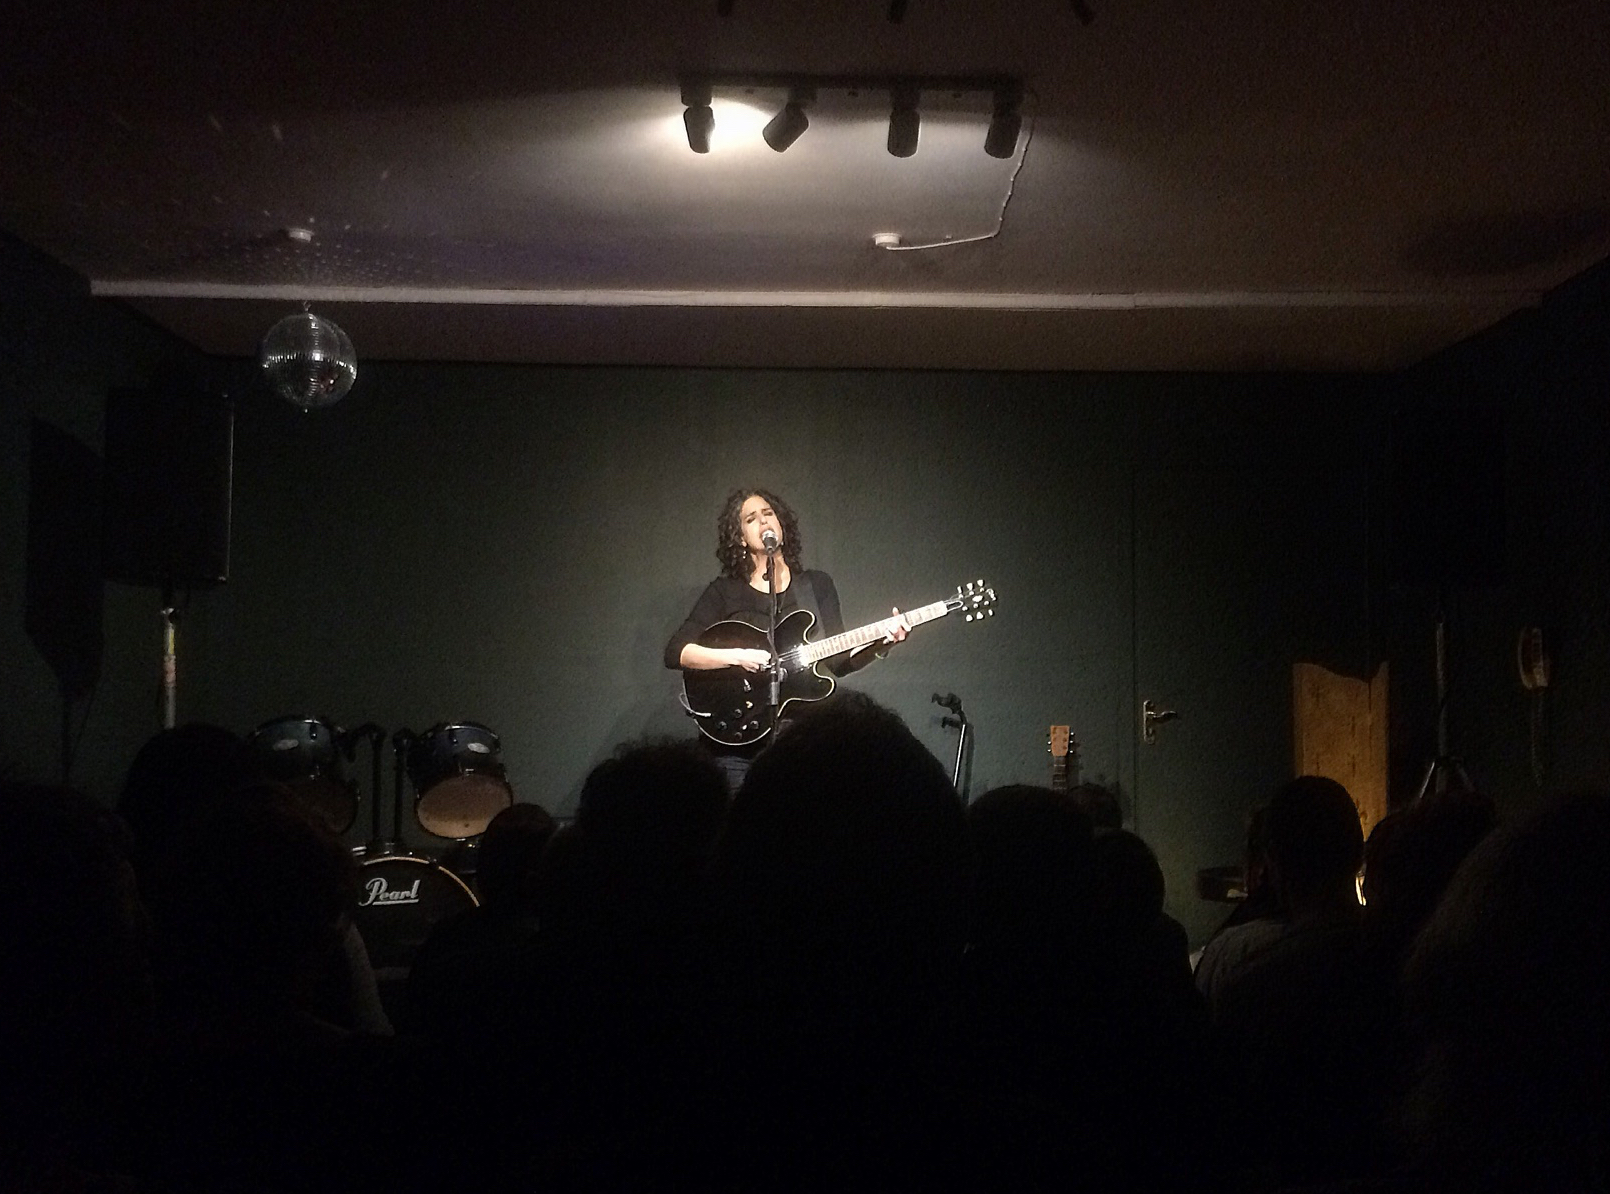 Live at Toals in Smithborough, Ireland